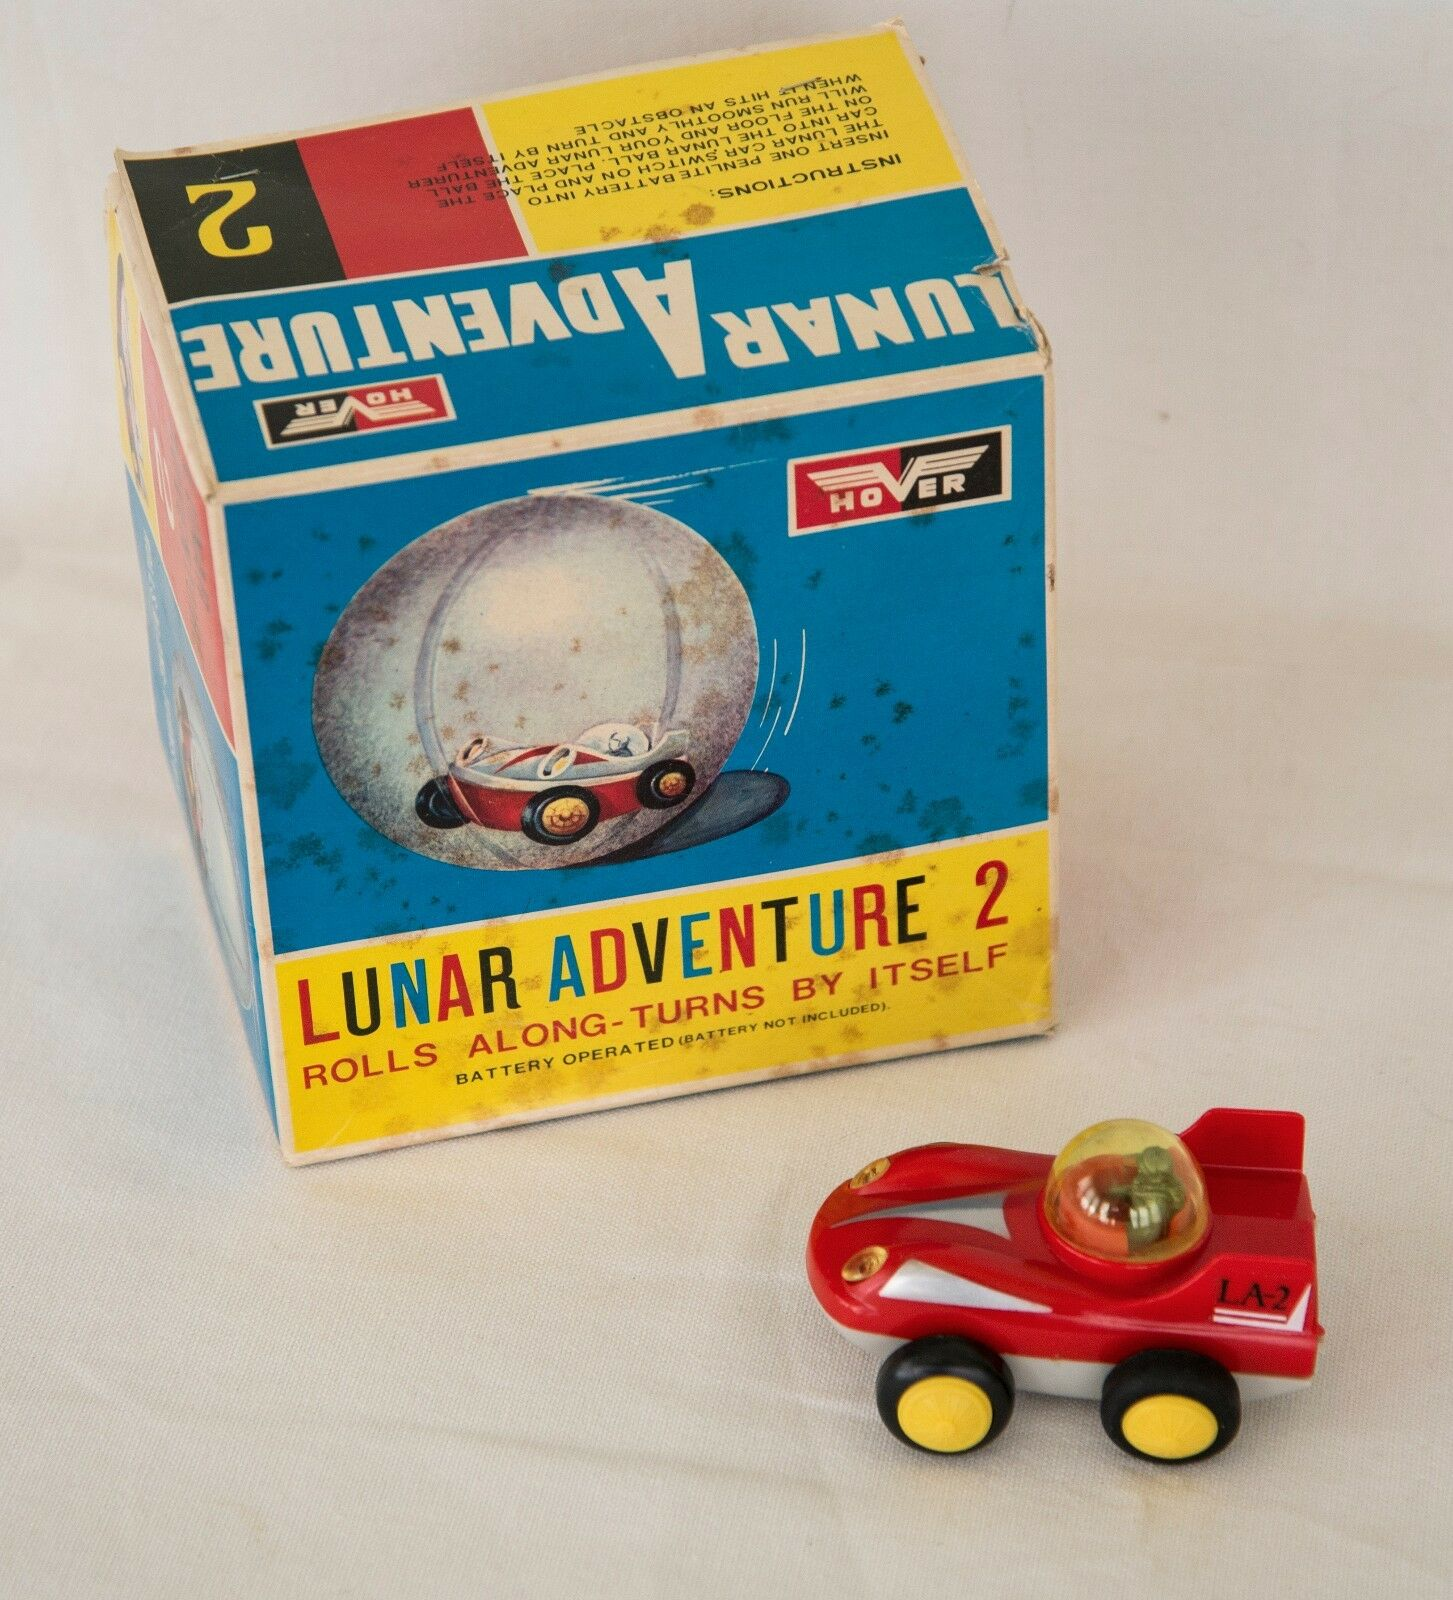 VINTAGE HOVER LUNAR ADVENTURE 2 BATTERY OPERATED VEHICLE IN ORIGINAL BOX